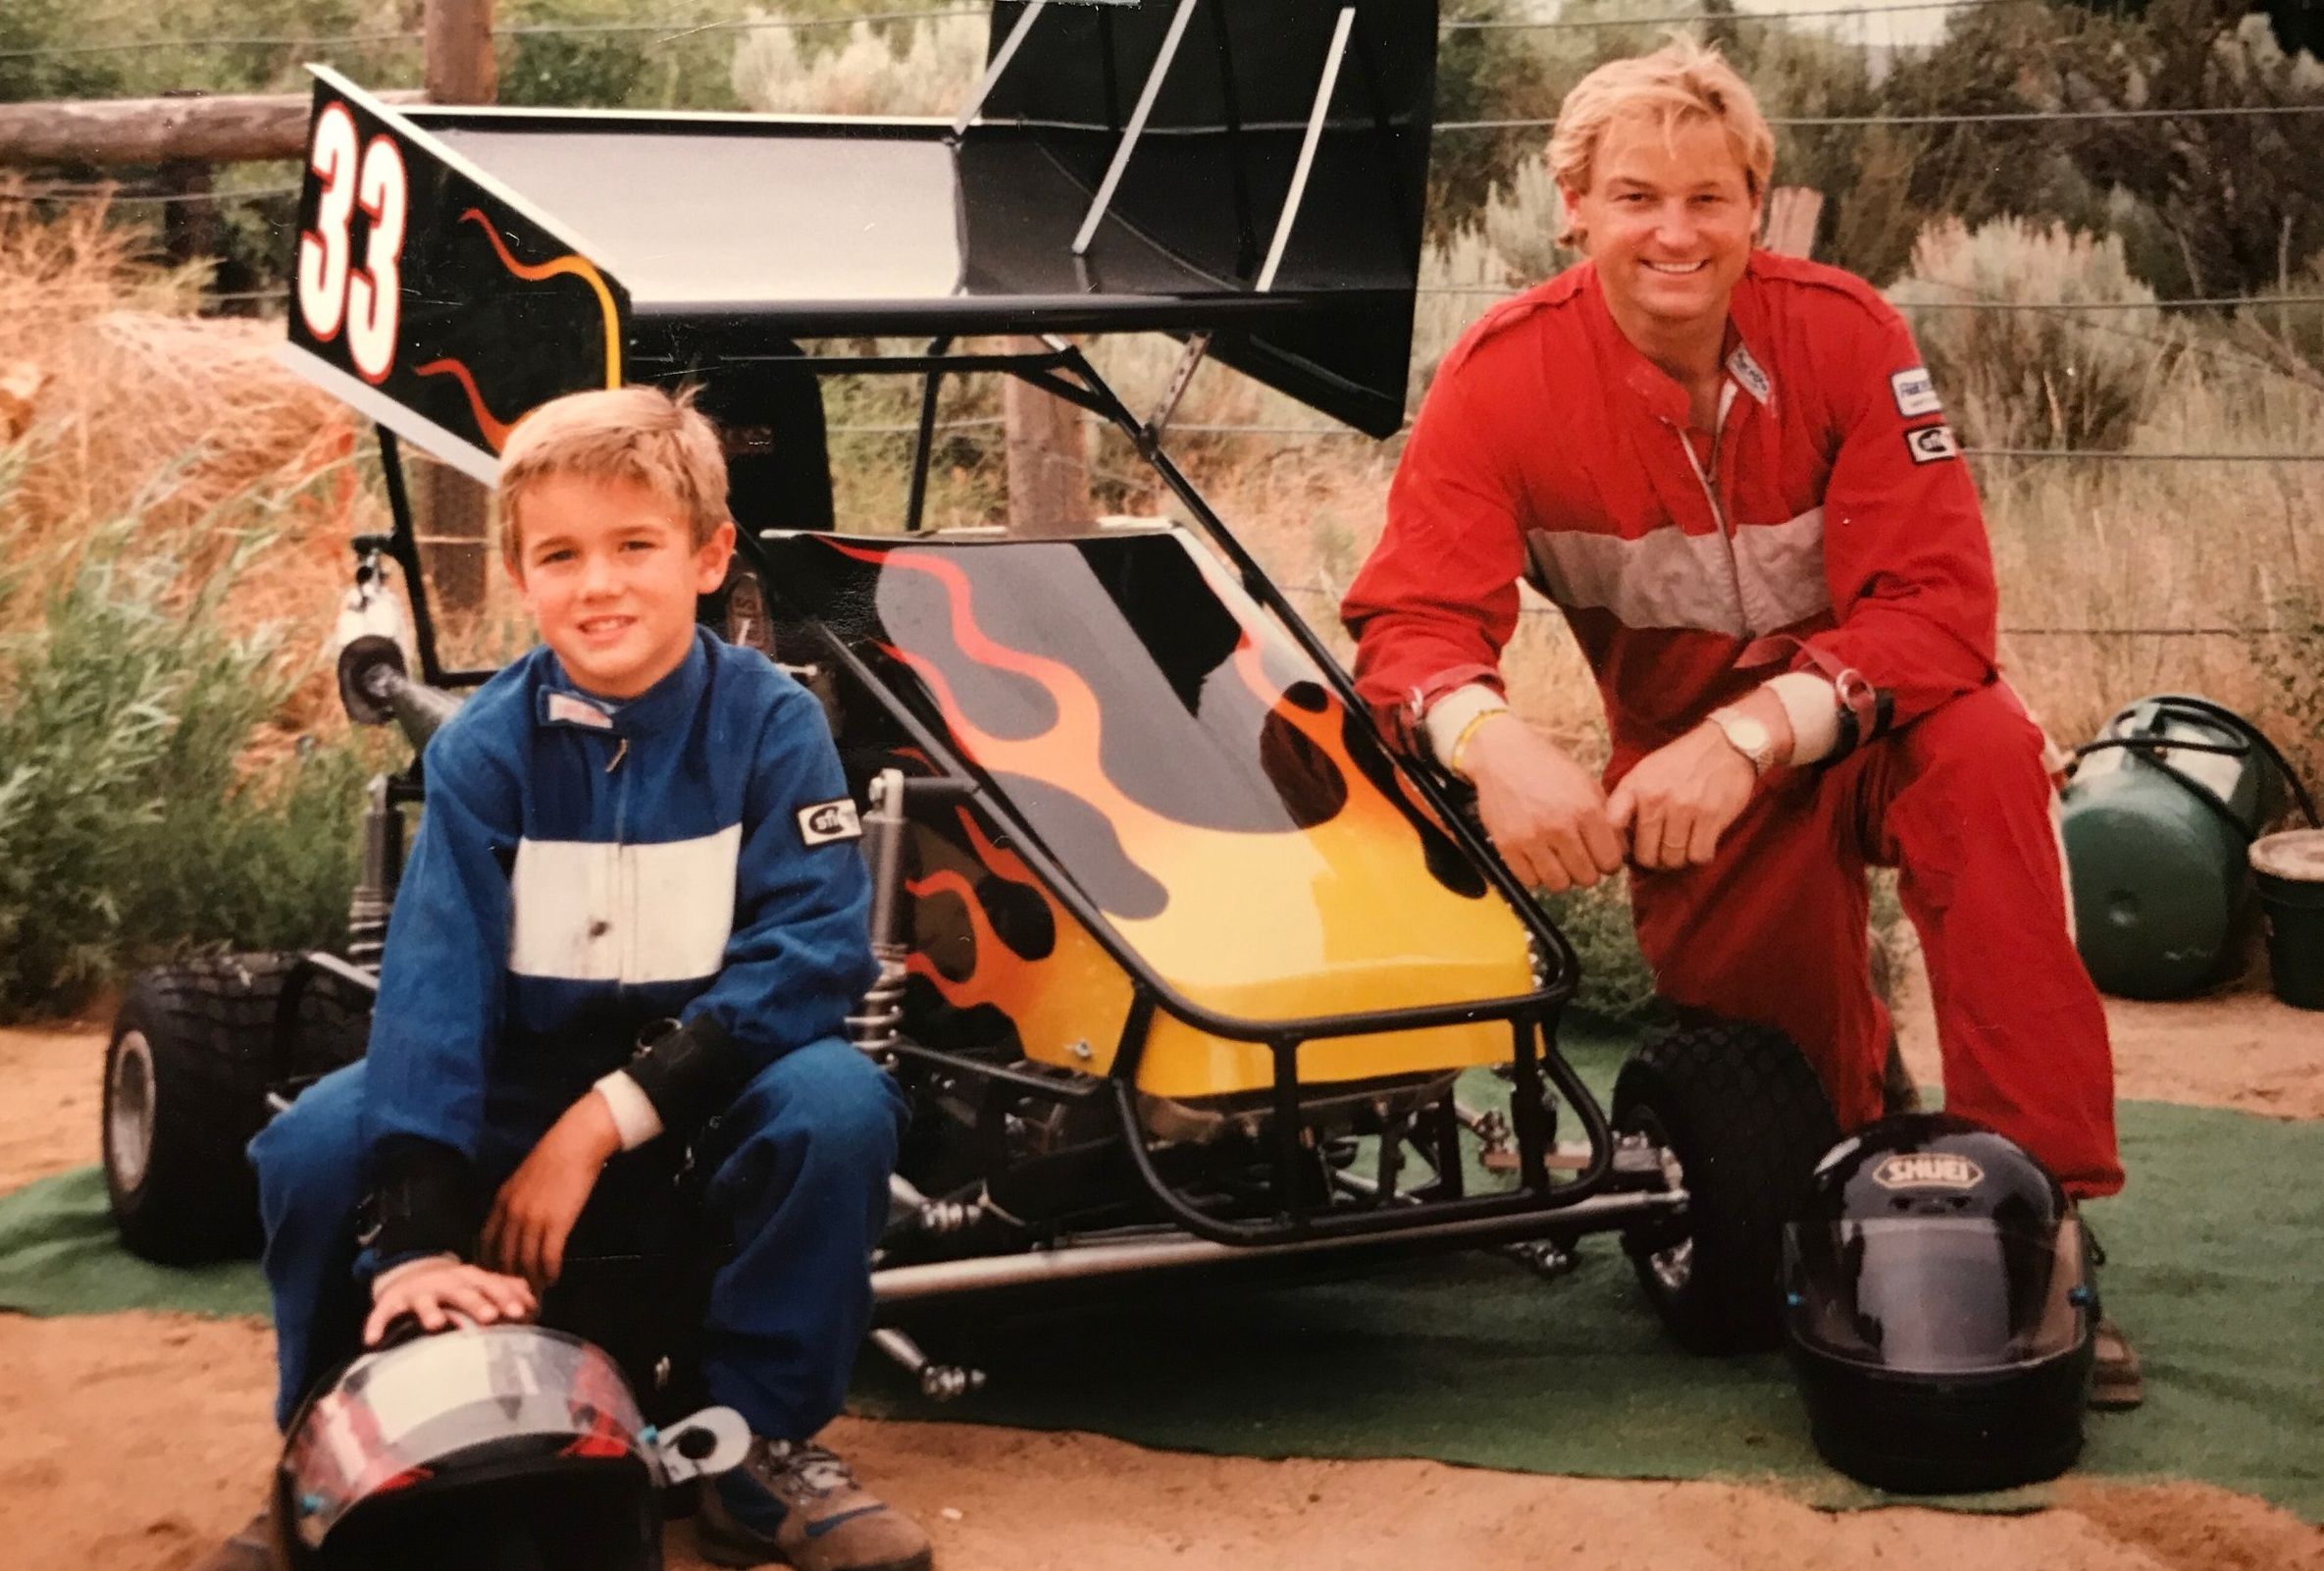 Outlaw Kart Racing with his son, Harris at 8 years old.